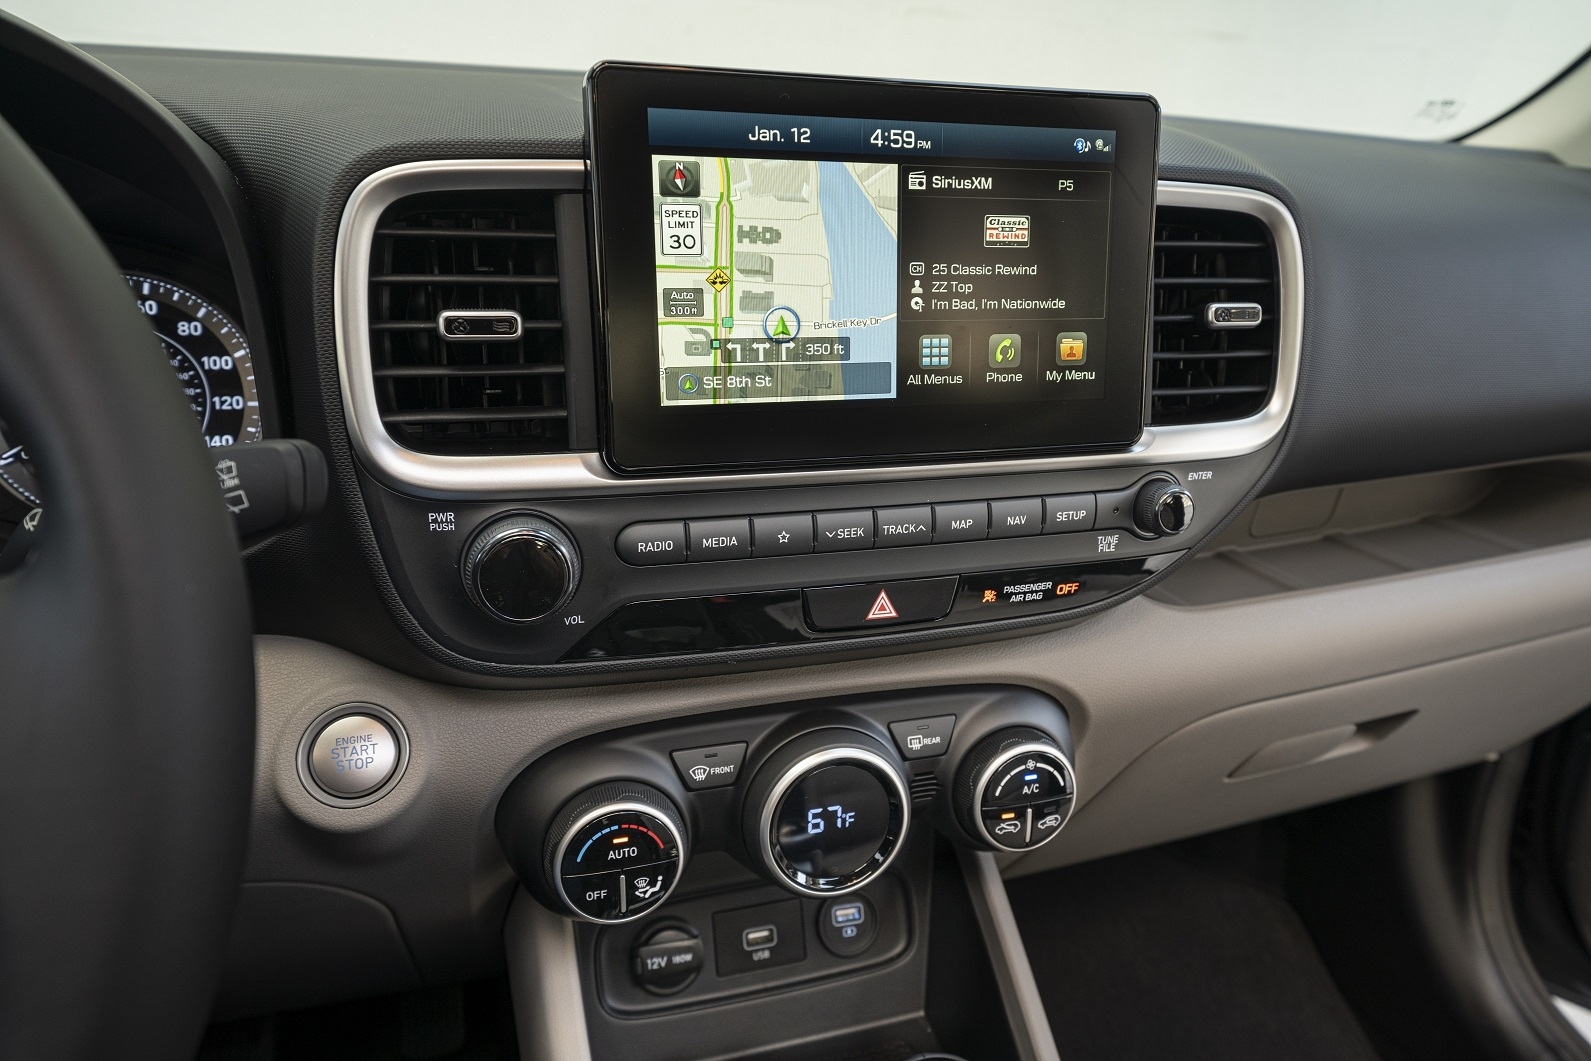 The infotainment touch screen